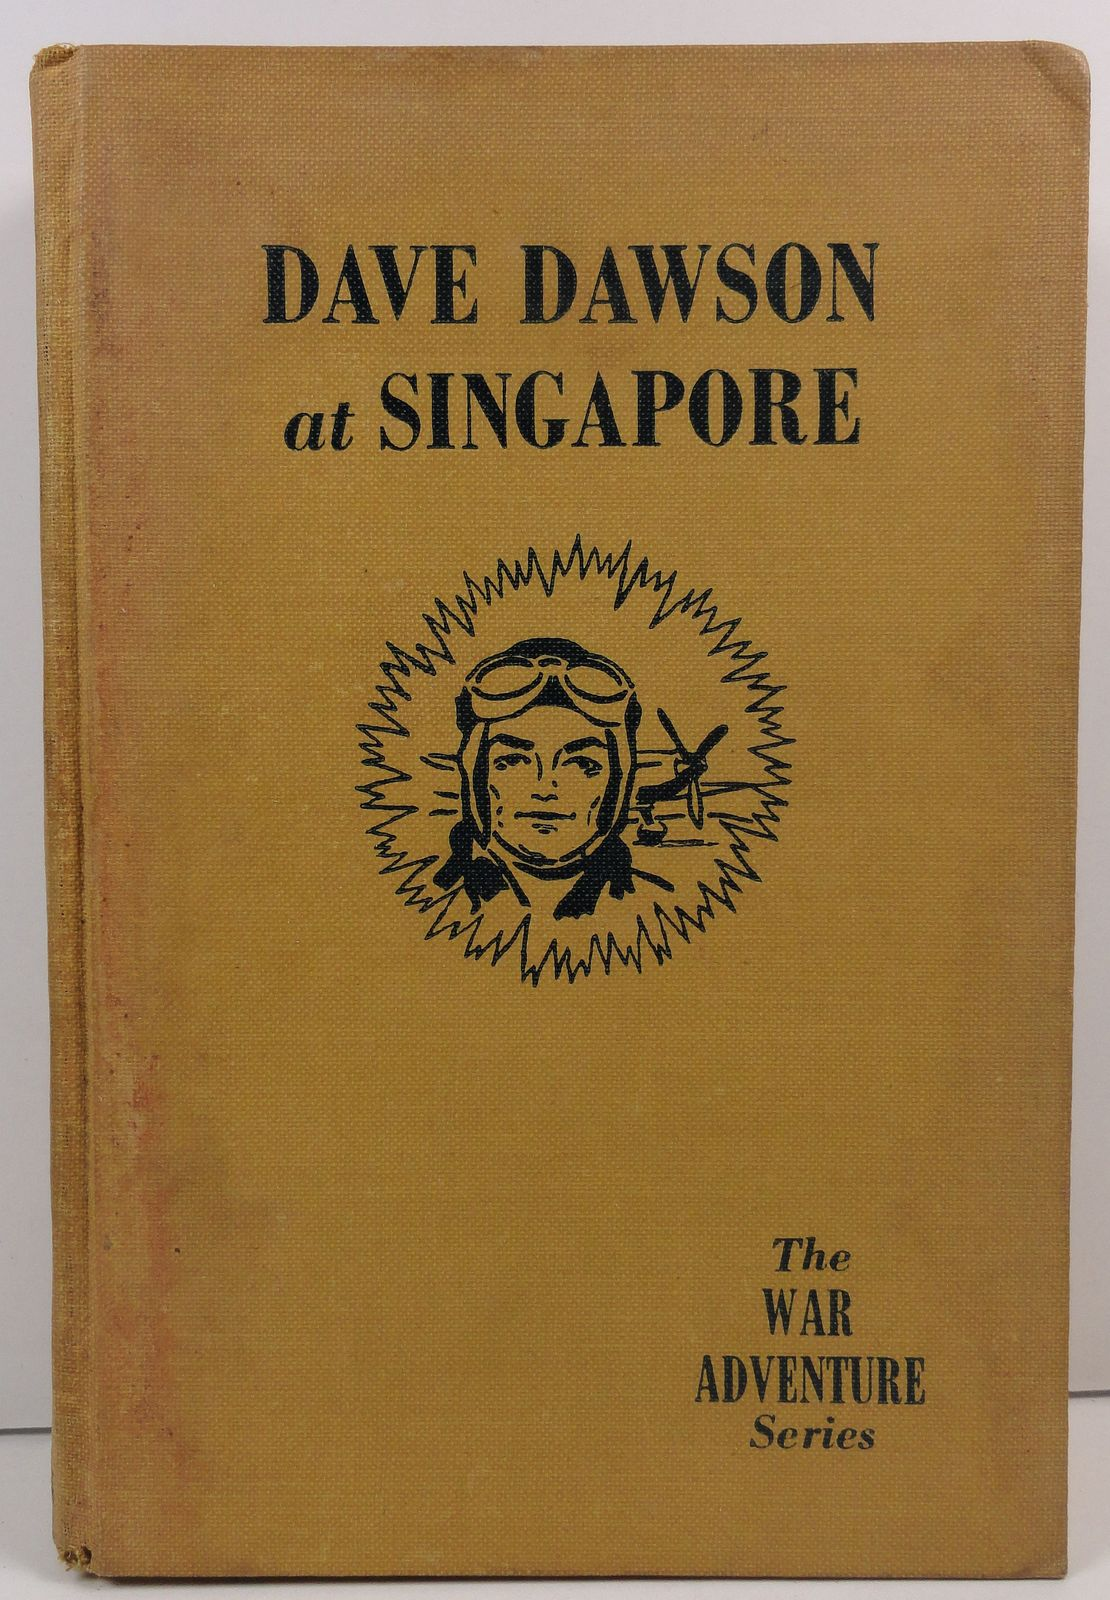 Dave Dawson at Singapore R. Sidney Bowen War Adventure Series